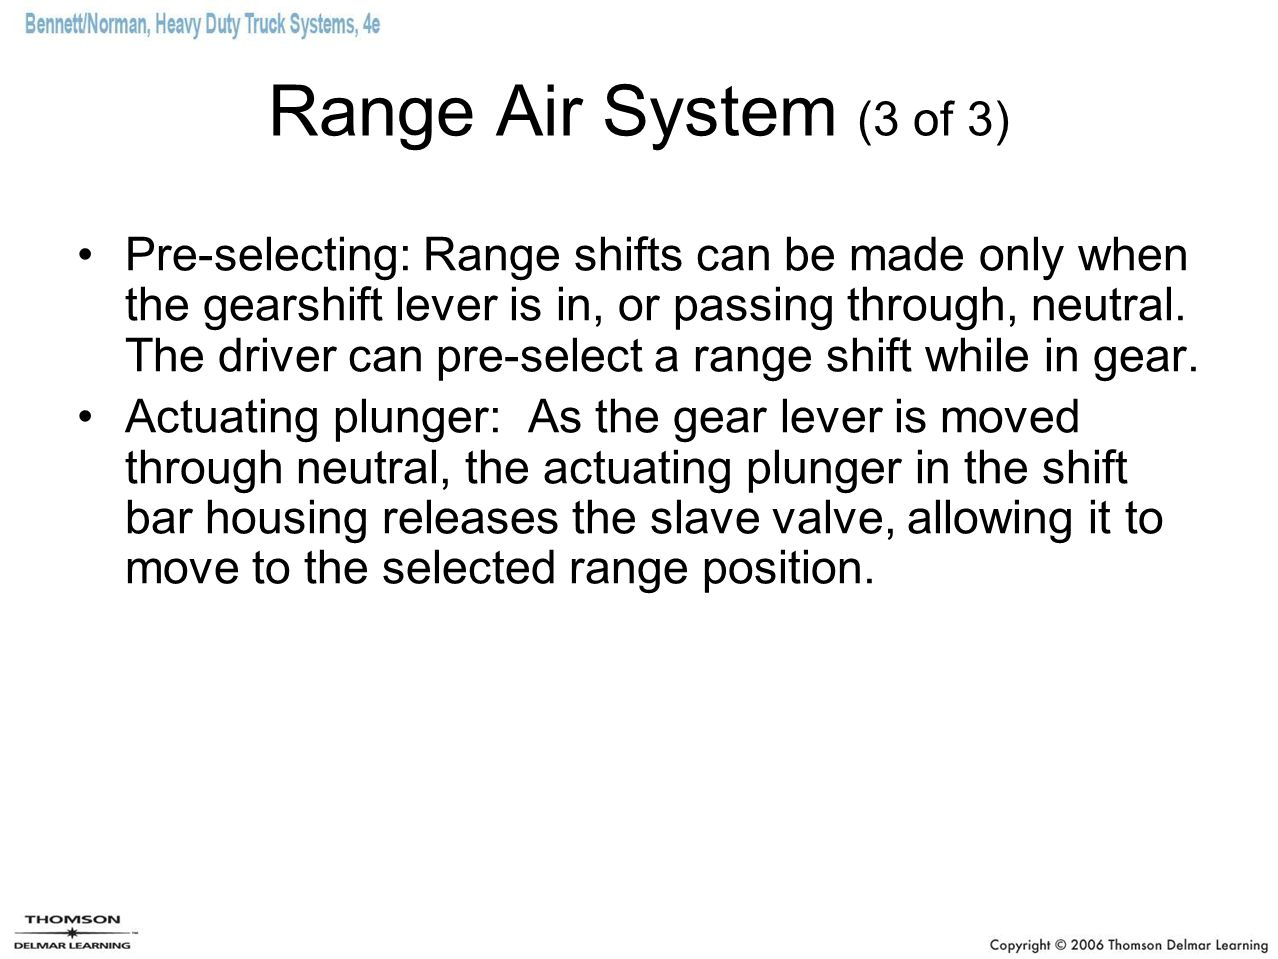 Range Air System (3 of 3)